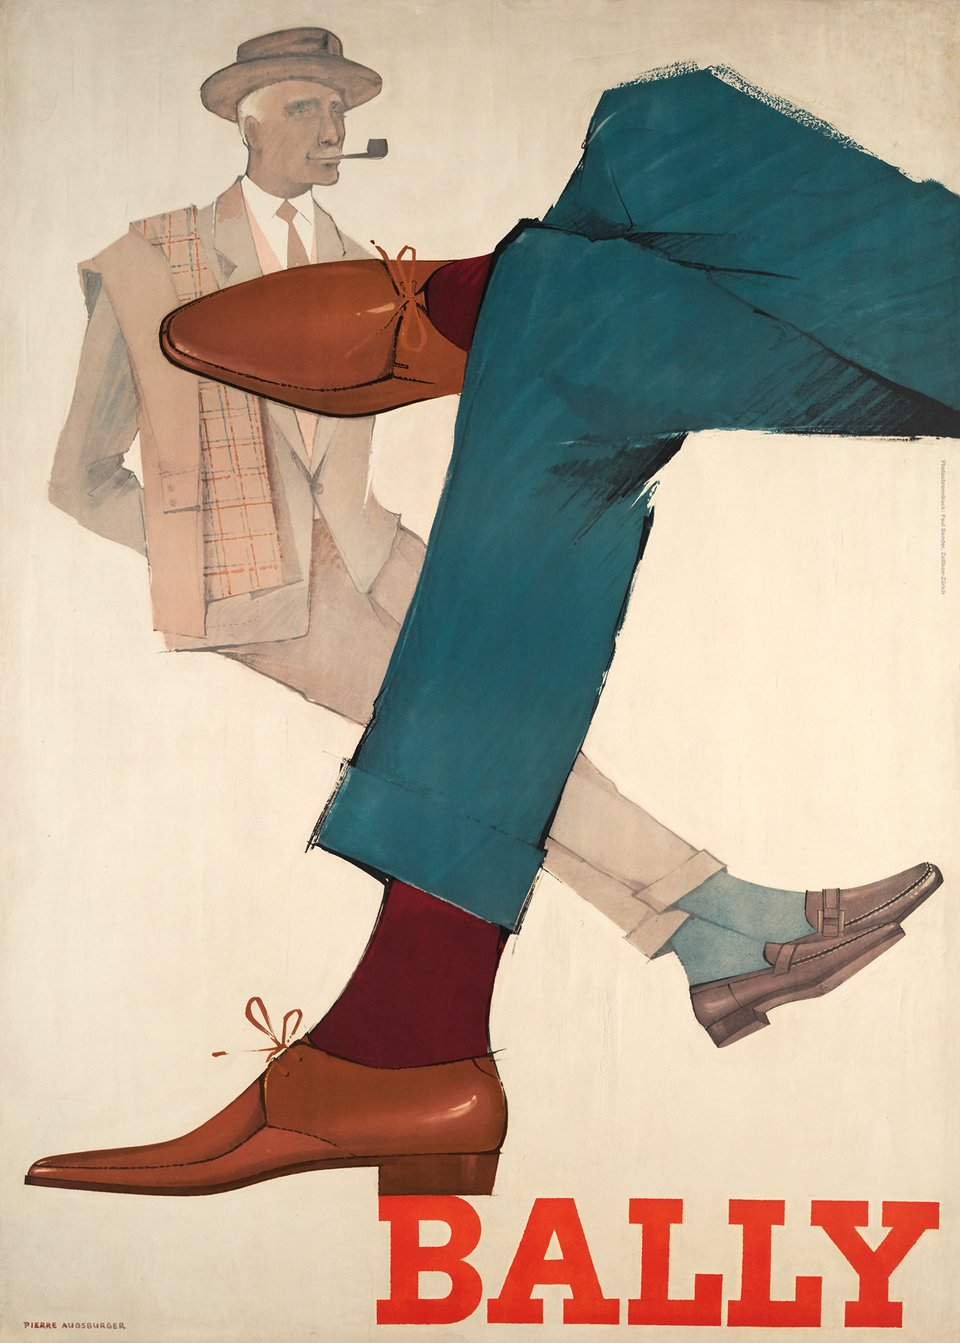 Bally – Affiche ancienne – Pierre AUGSBURGER – 1959